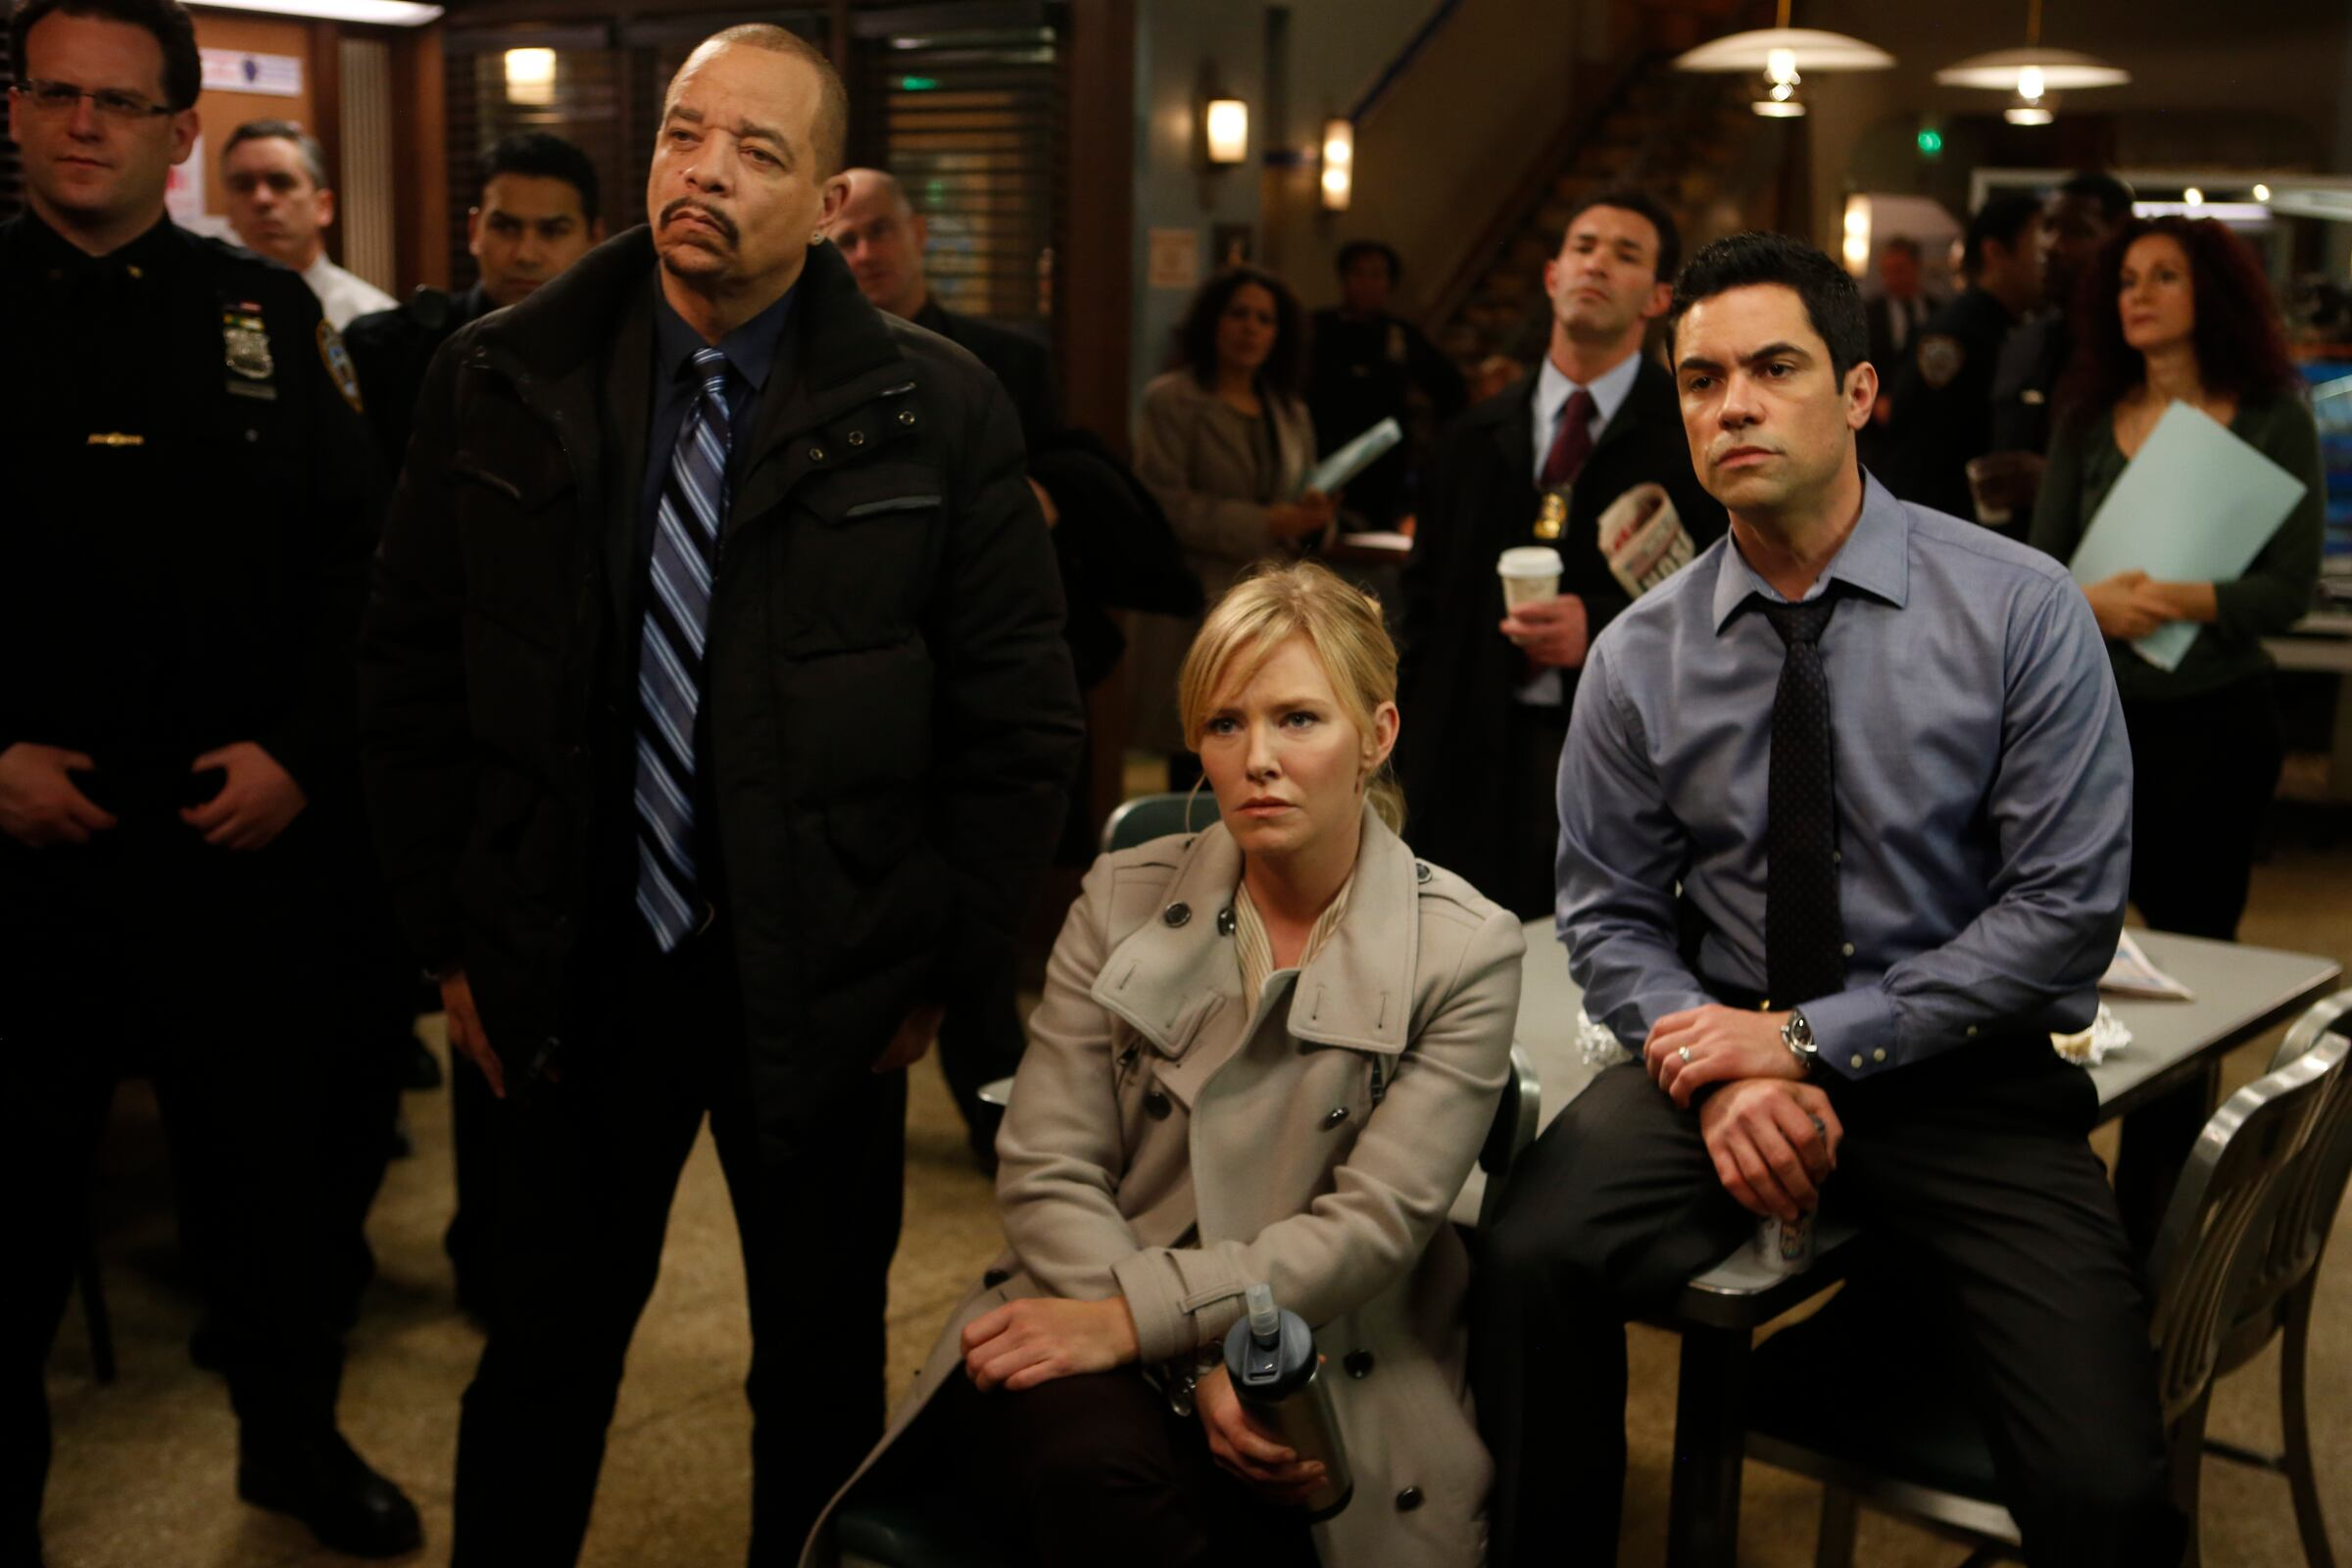 Law & Order SVU - Episode 1517 - Criminal Stories